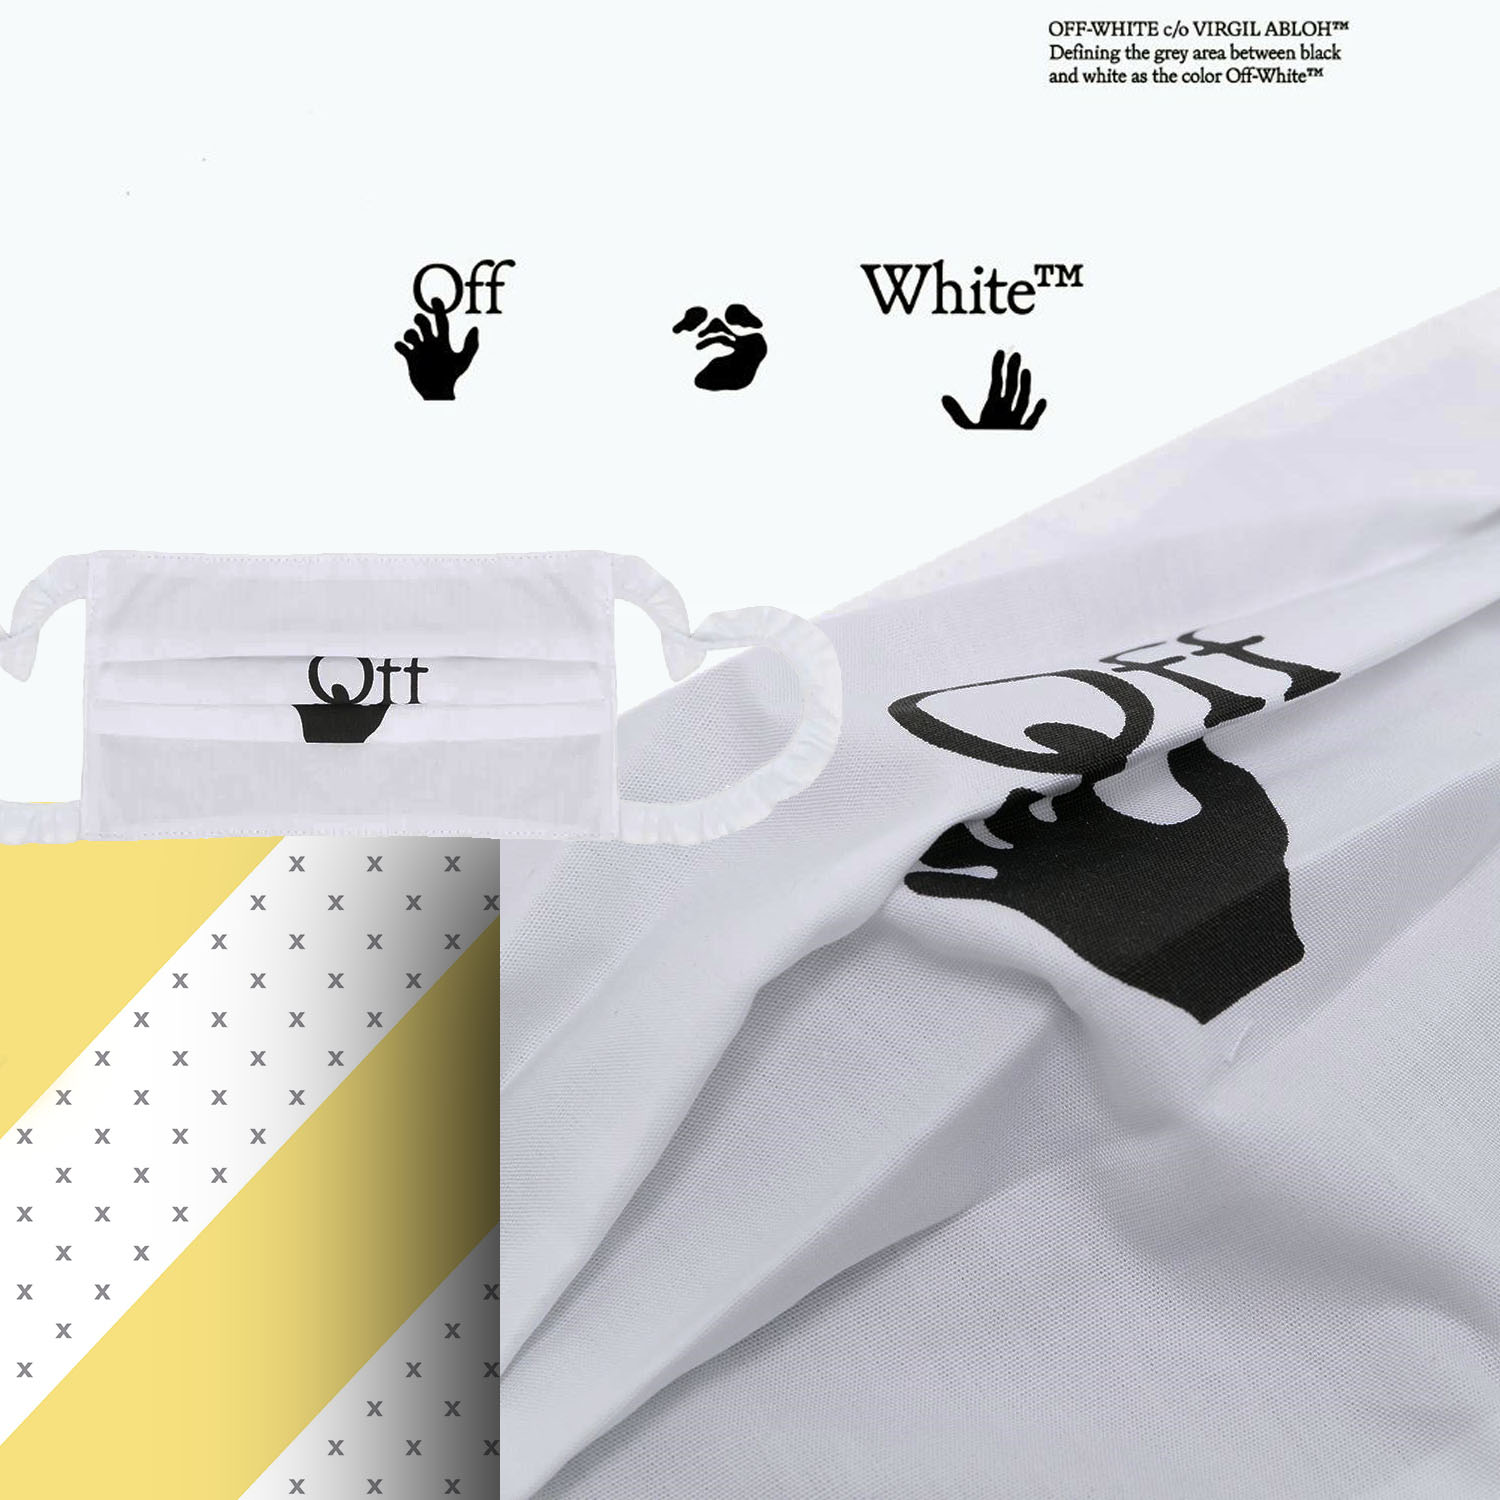 Off-White Protective Face Mask 2021 by RUNWAY MAGAZINE